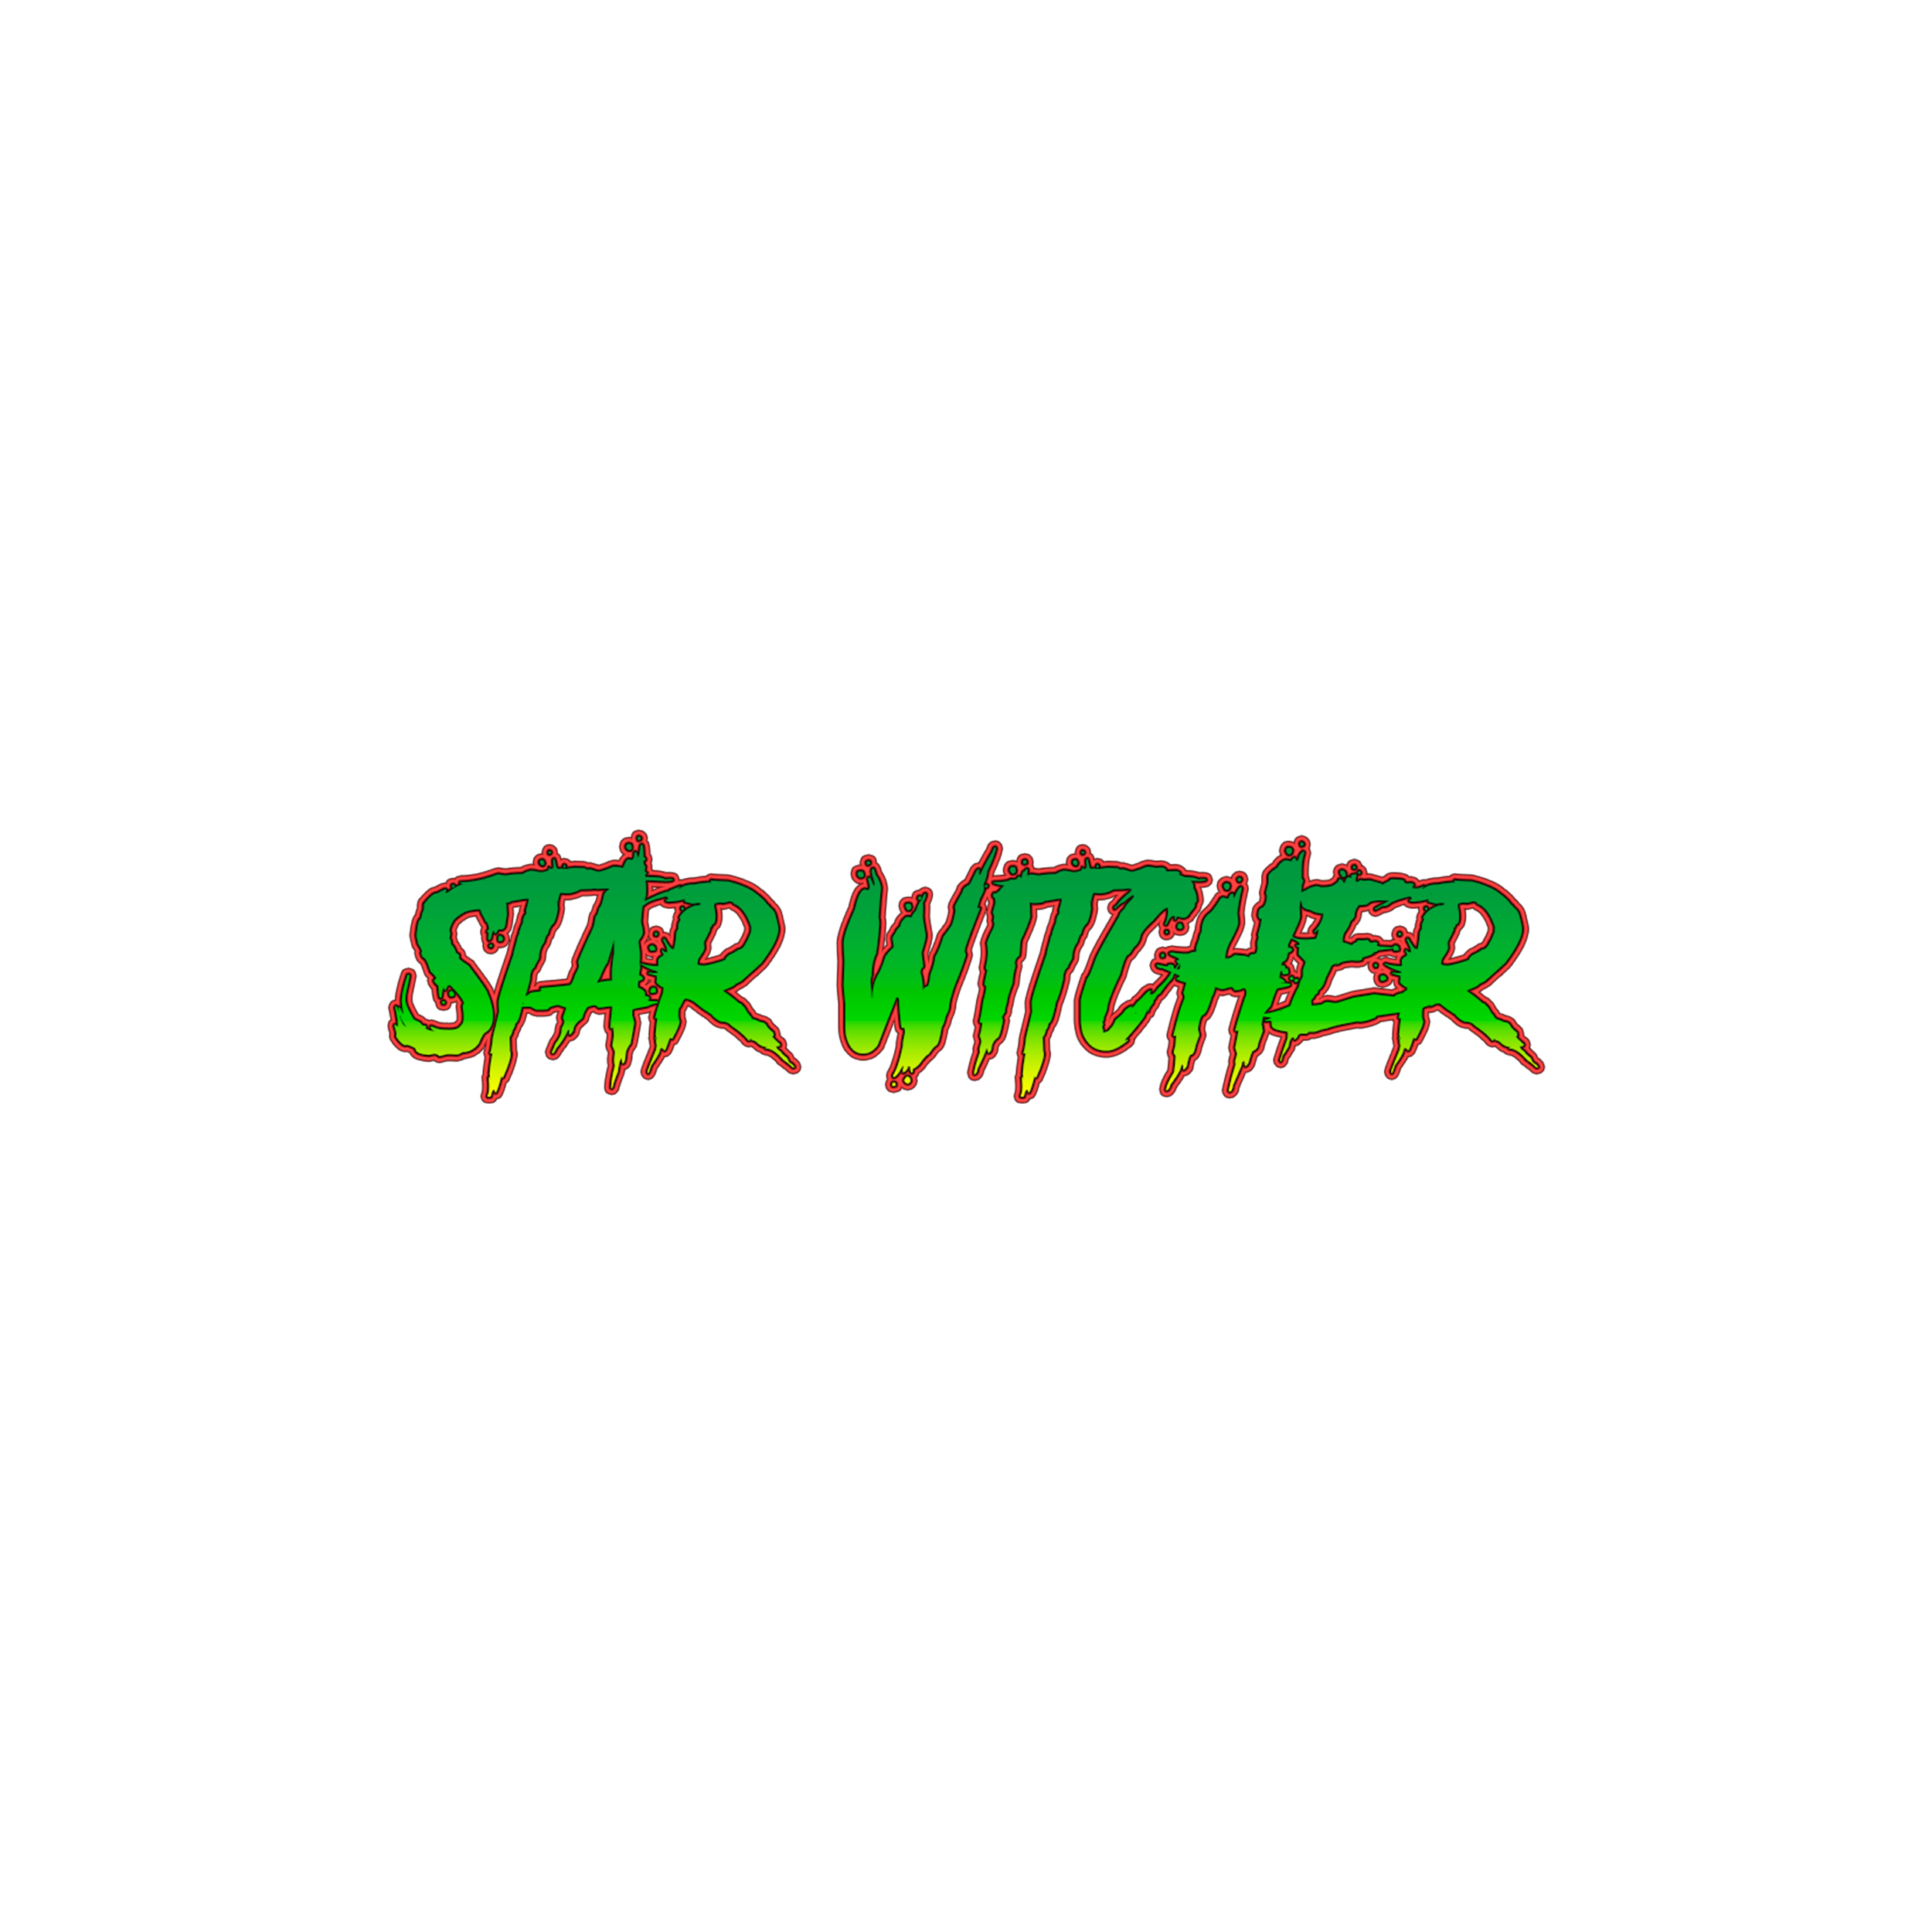 Star Witcher logo